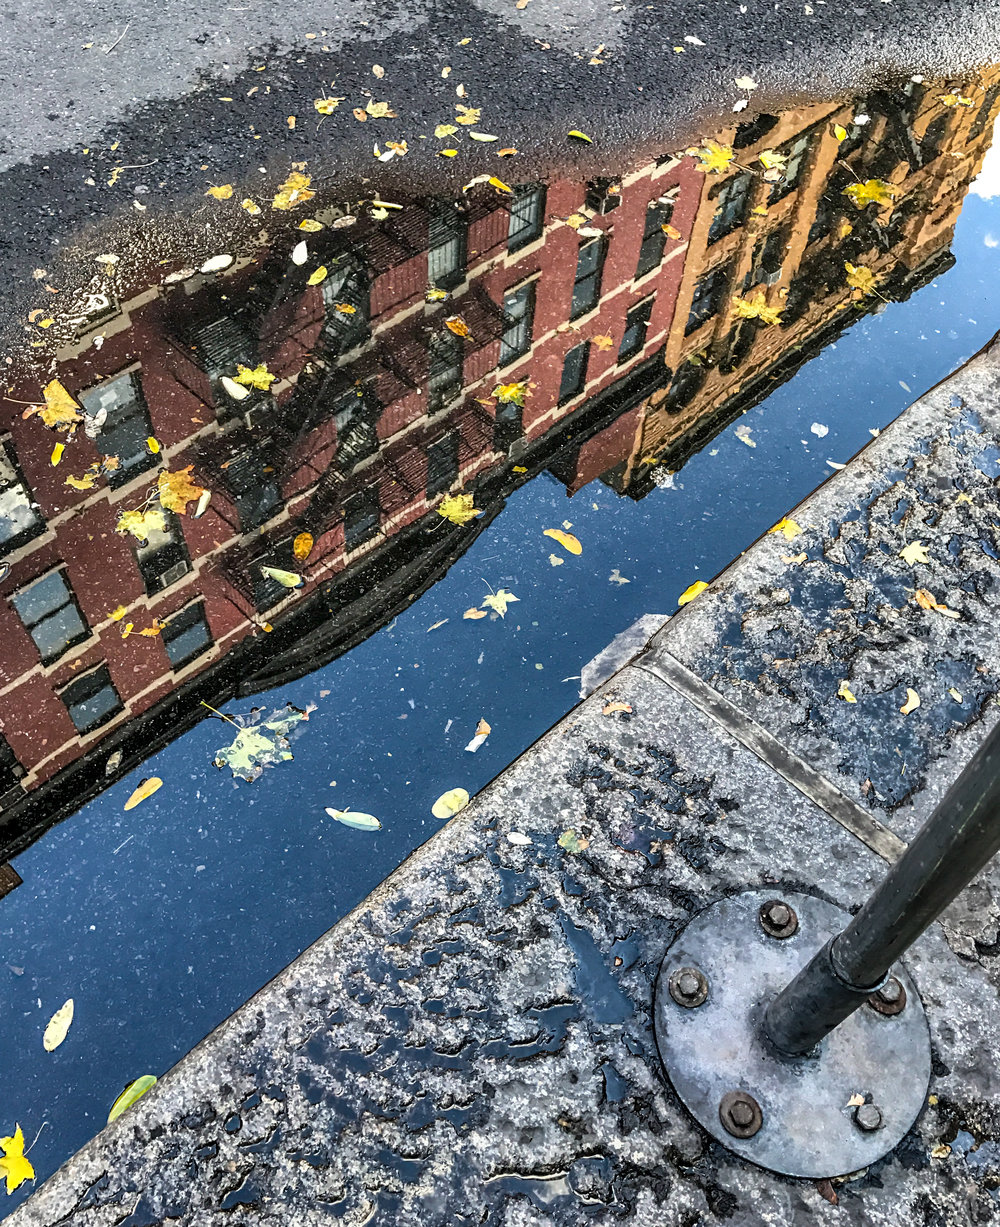 NYC Puddle